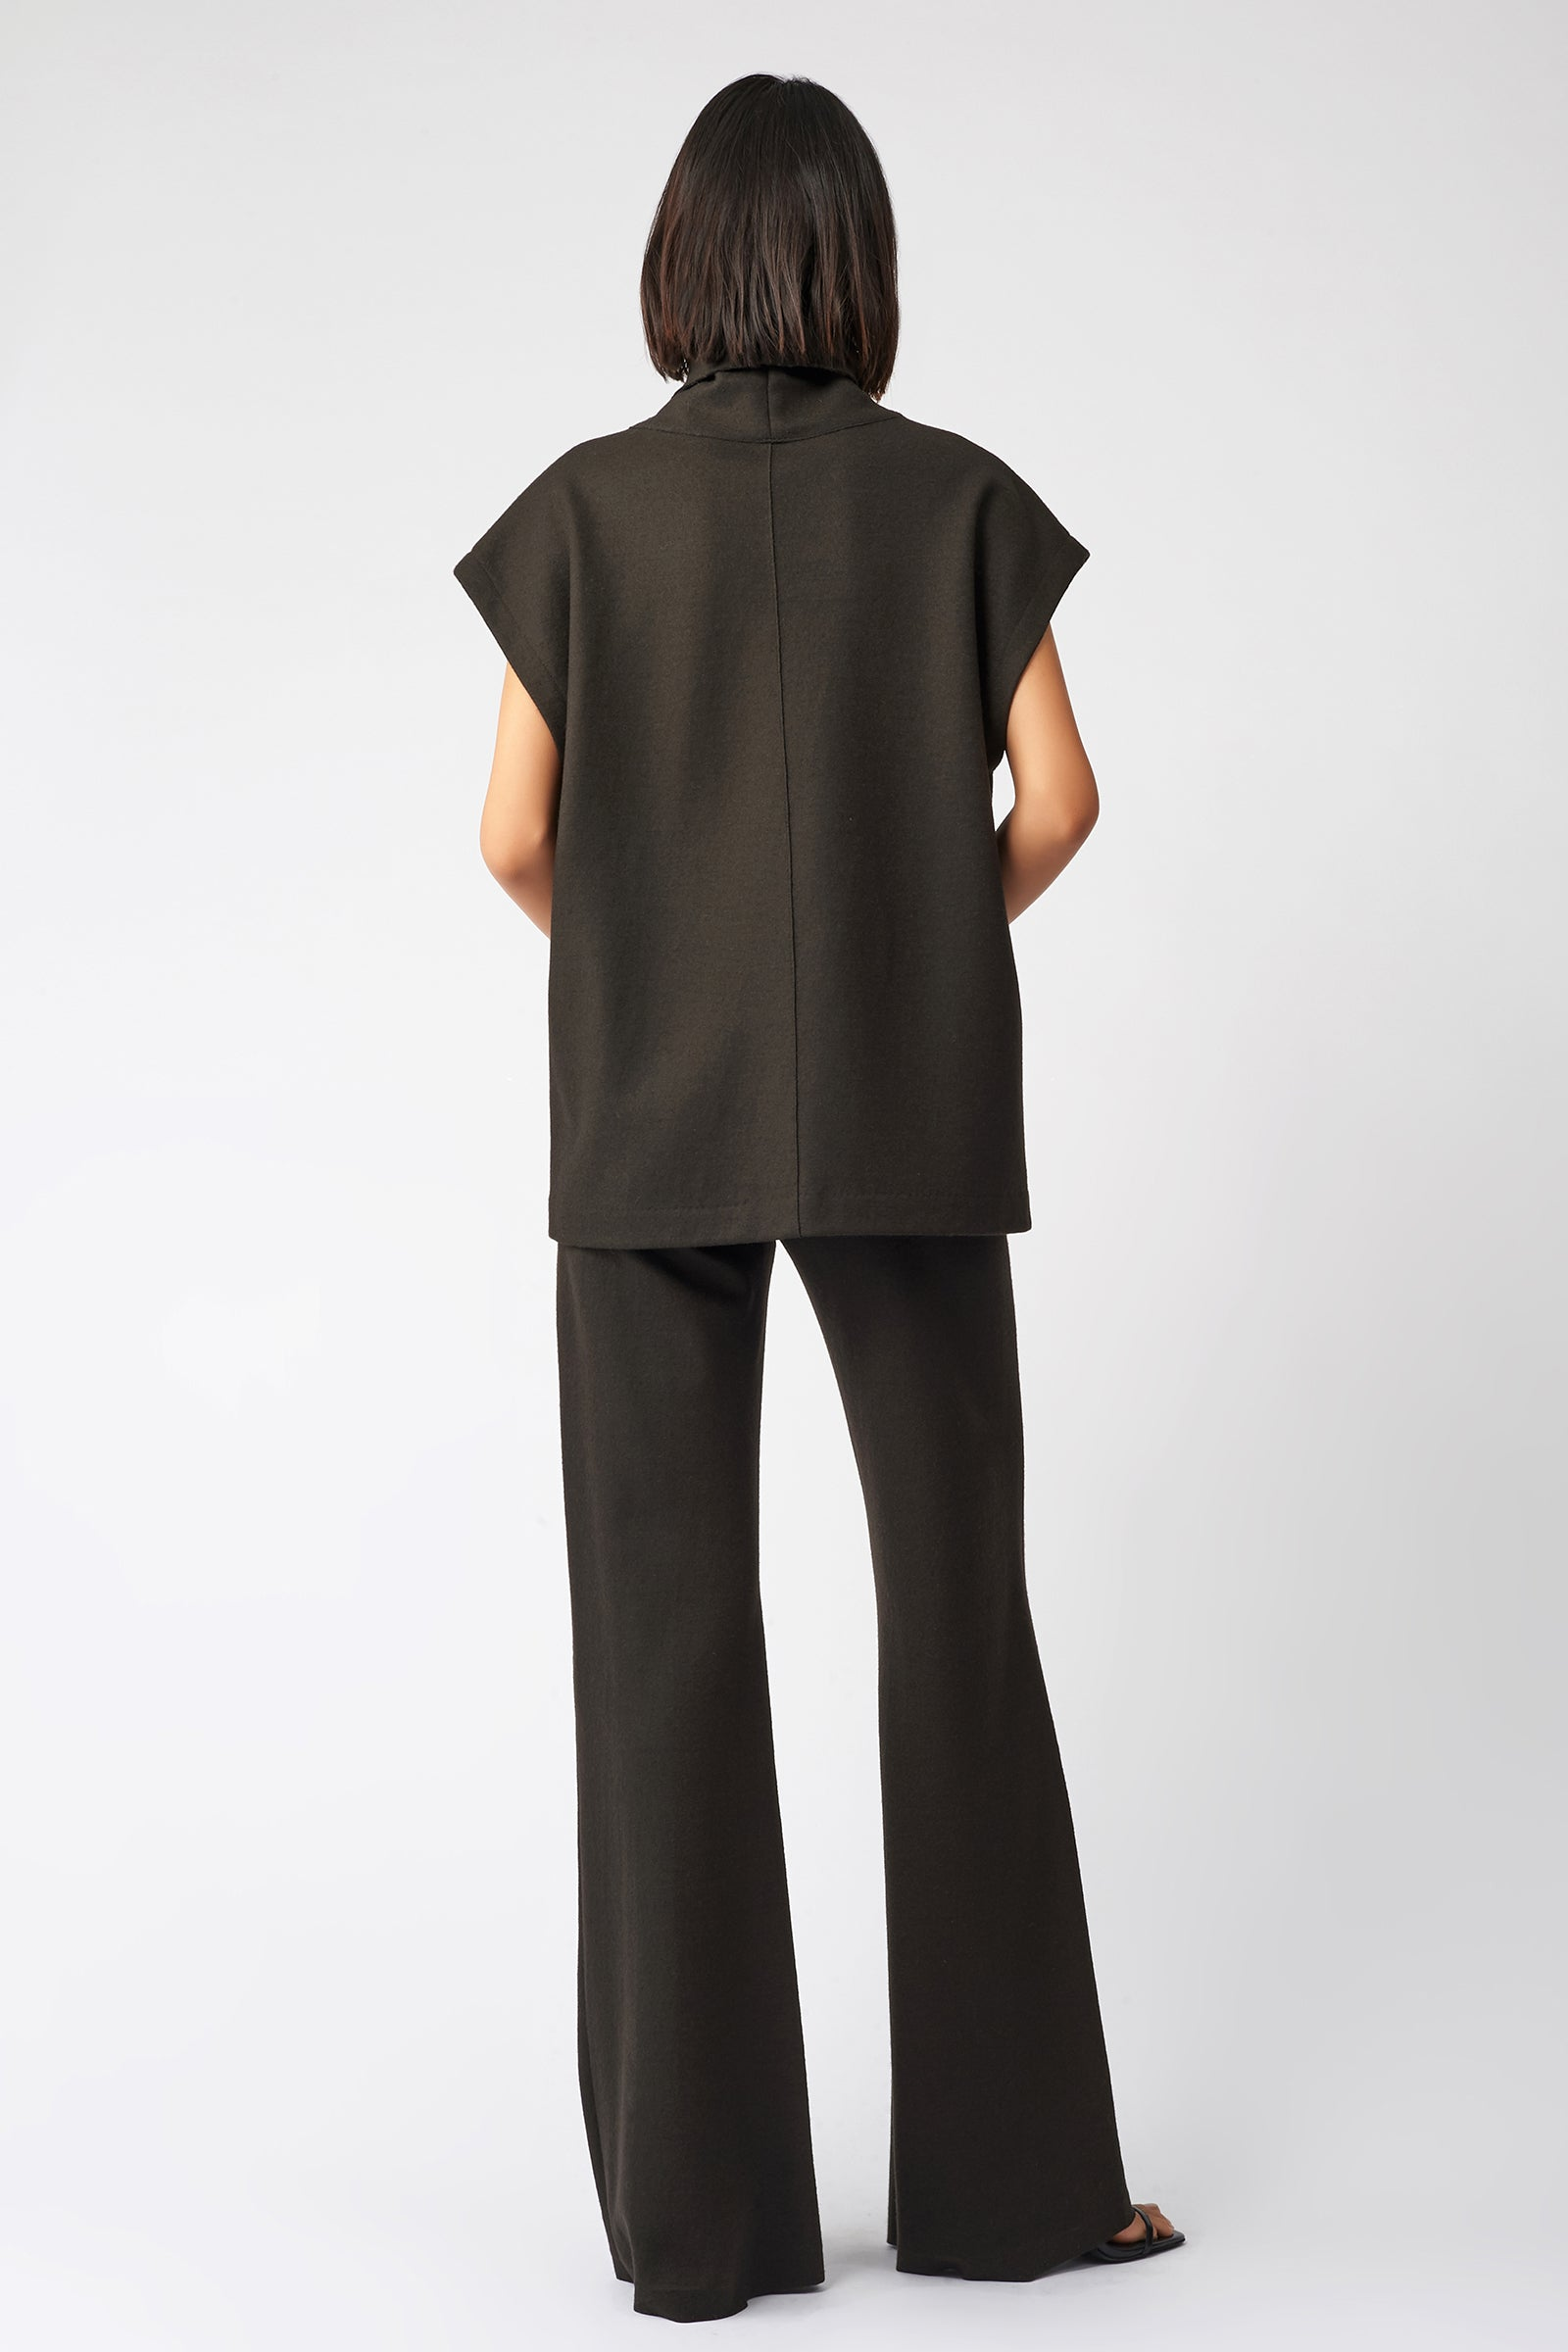 Kal Rieman Seamed Cap Sleeve Turtleneck in Espresso on Model Full Front View